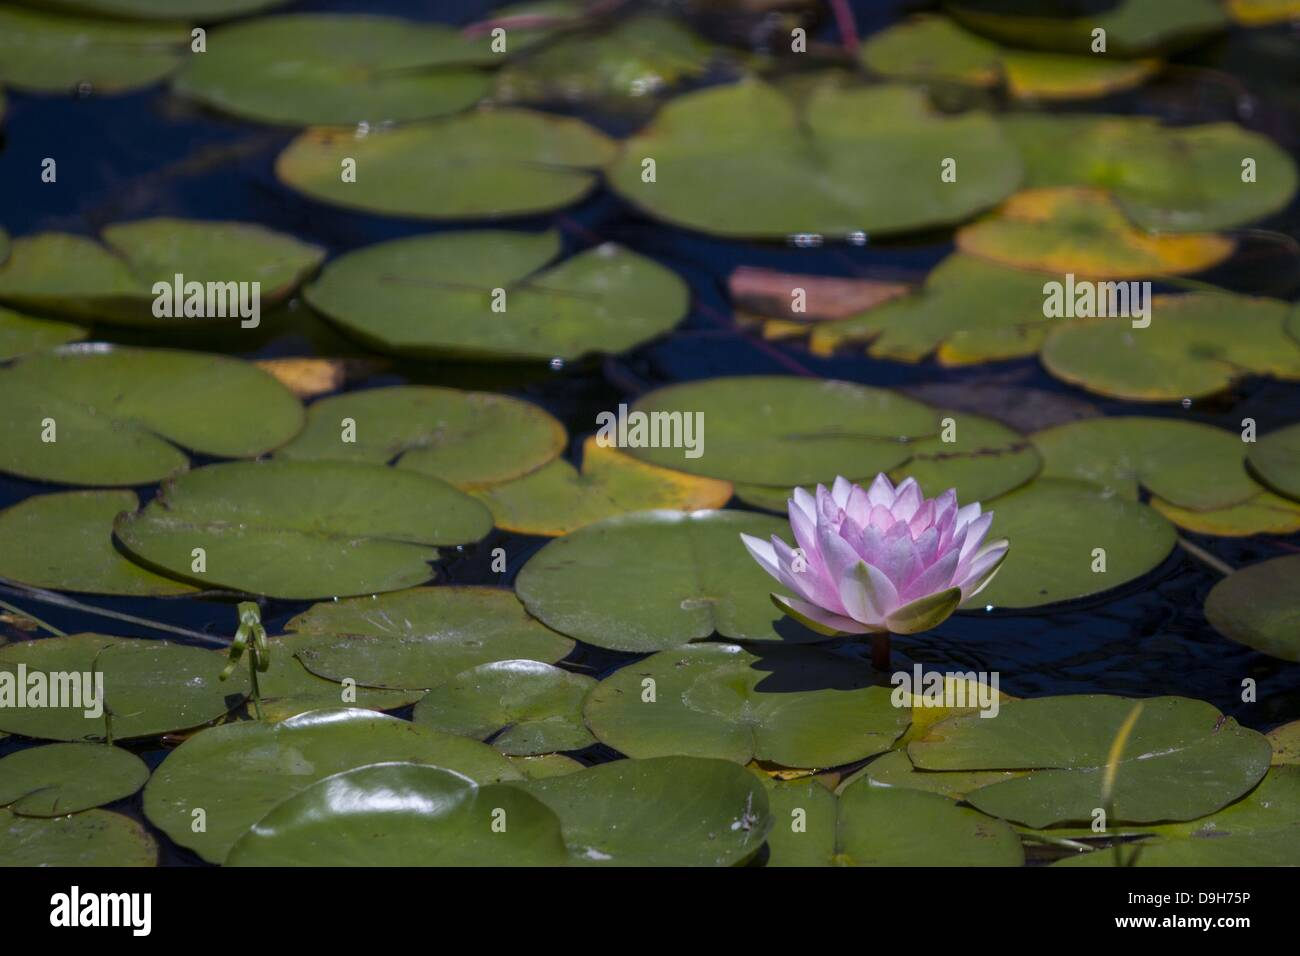 June 19, 2013 - Los Angeles, California, U.S - A lotus flower blossoms on Wednesday, June 19, 2013 at Echo Park Stock Photo